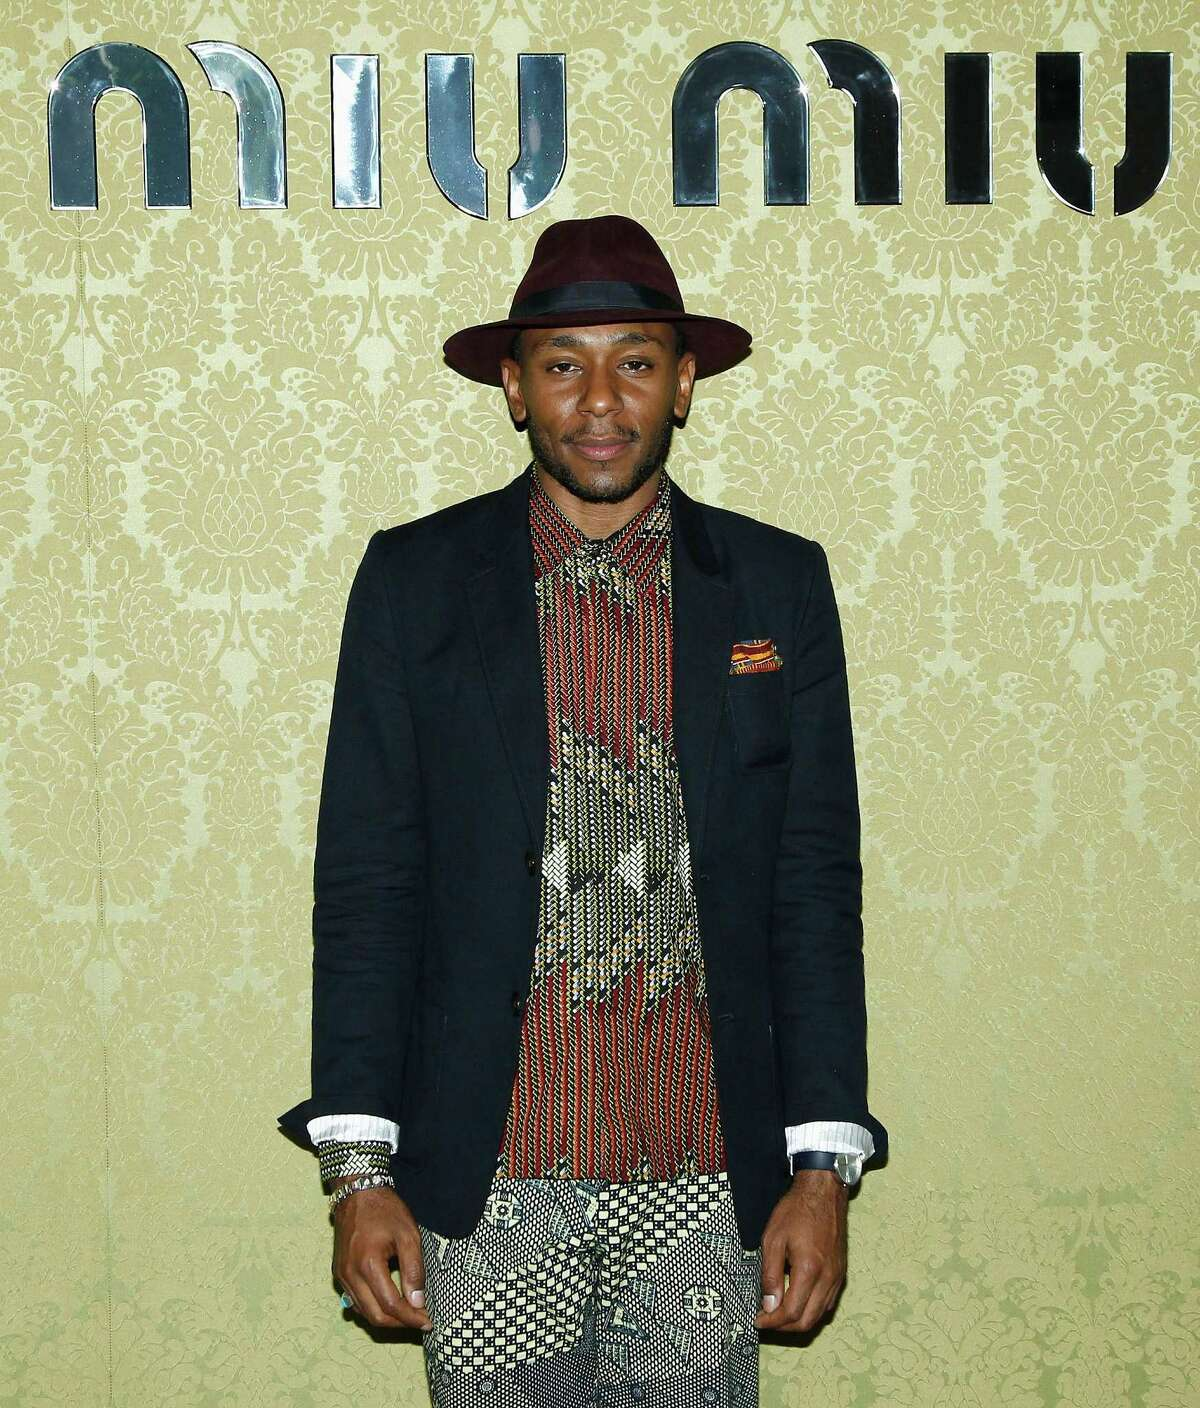 PARIS, FRANCE - JULY 05: Mos Def attends the Miu Miu Resort Collection 2015 at Palais d'Iena on July 5, 2014 in Paris, France. (Photo by Julien M. Hekimian/French Select/Getty Images)